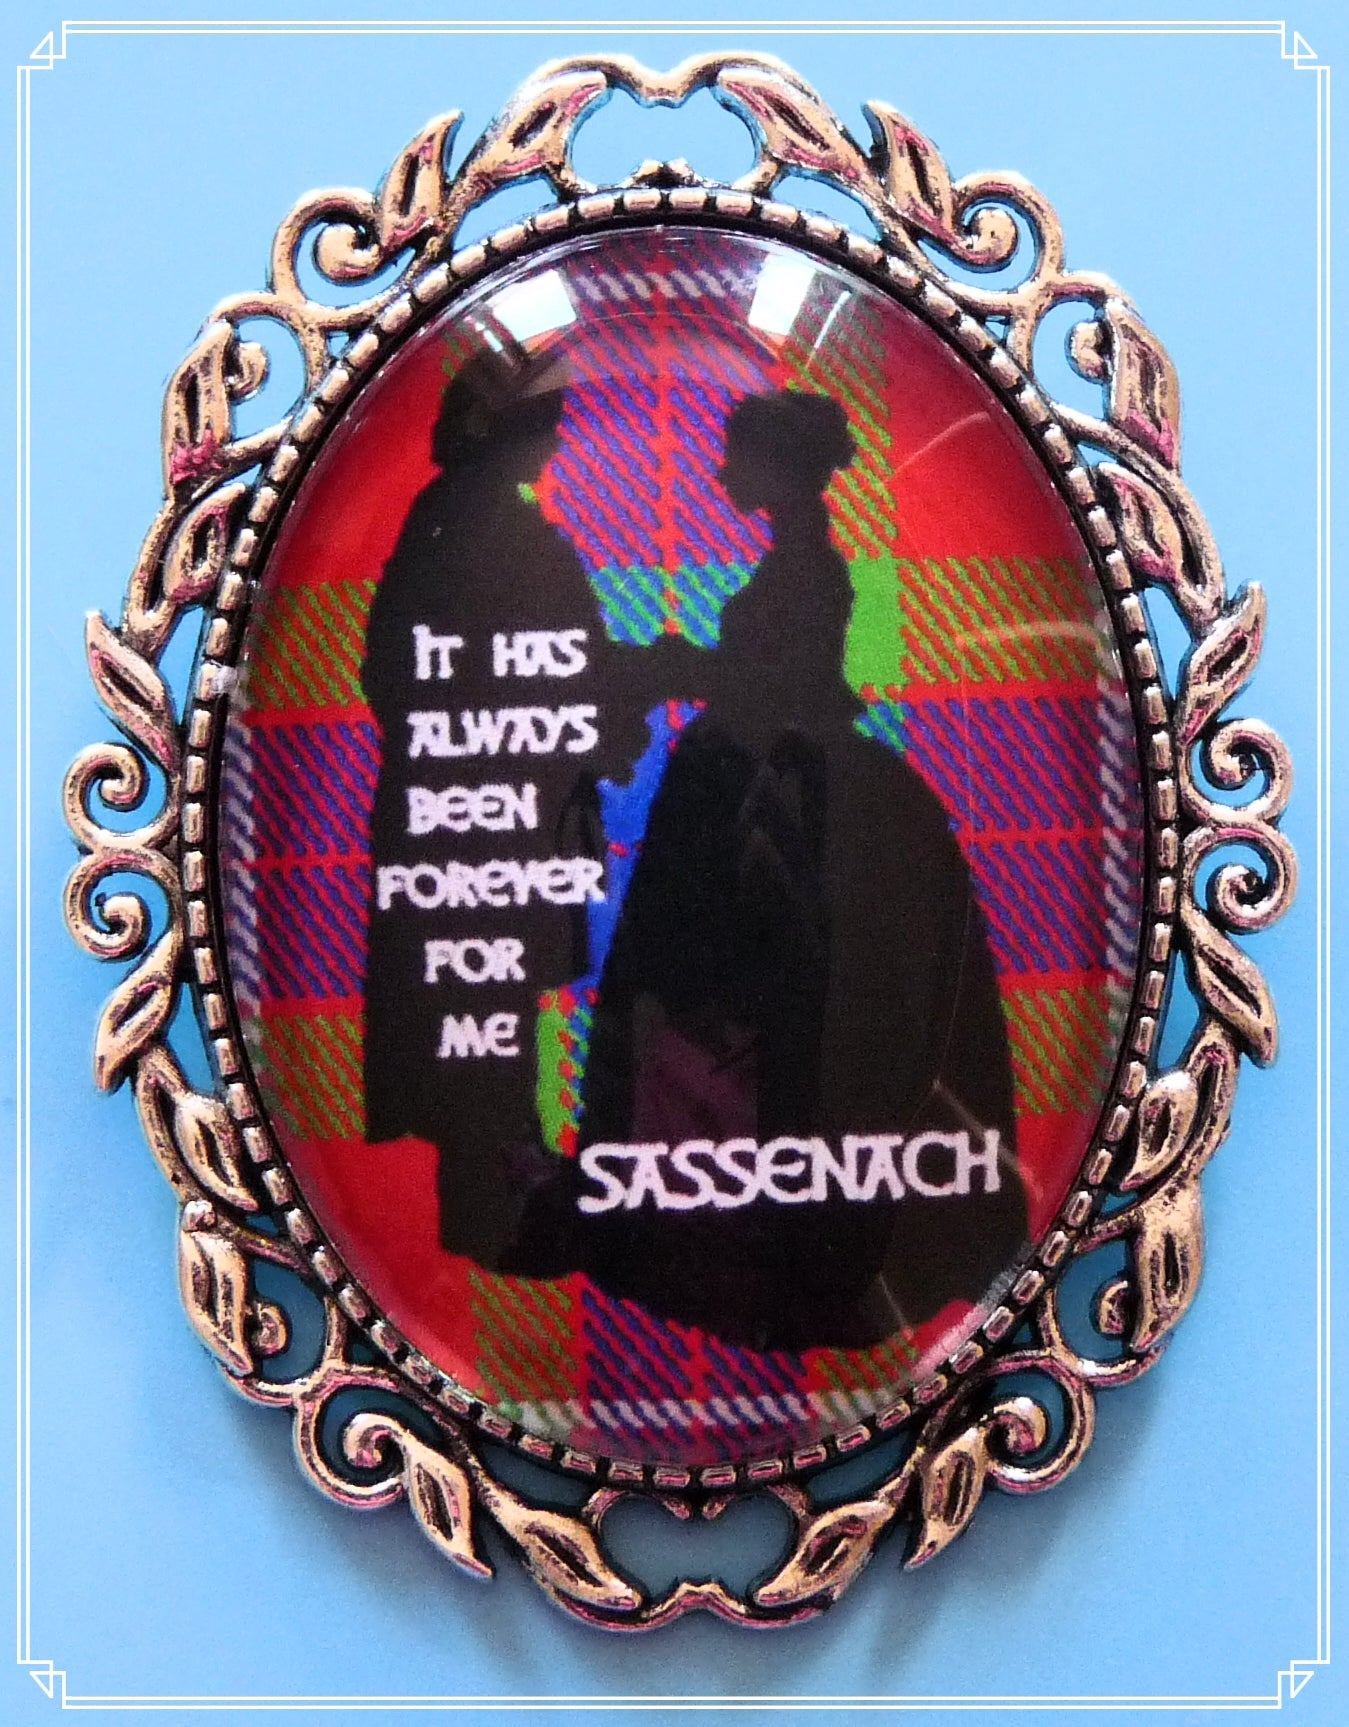 Forever brooch inspired by Outlander.